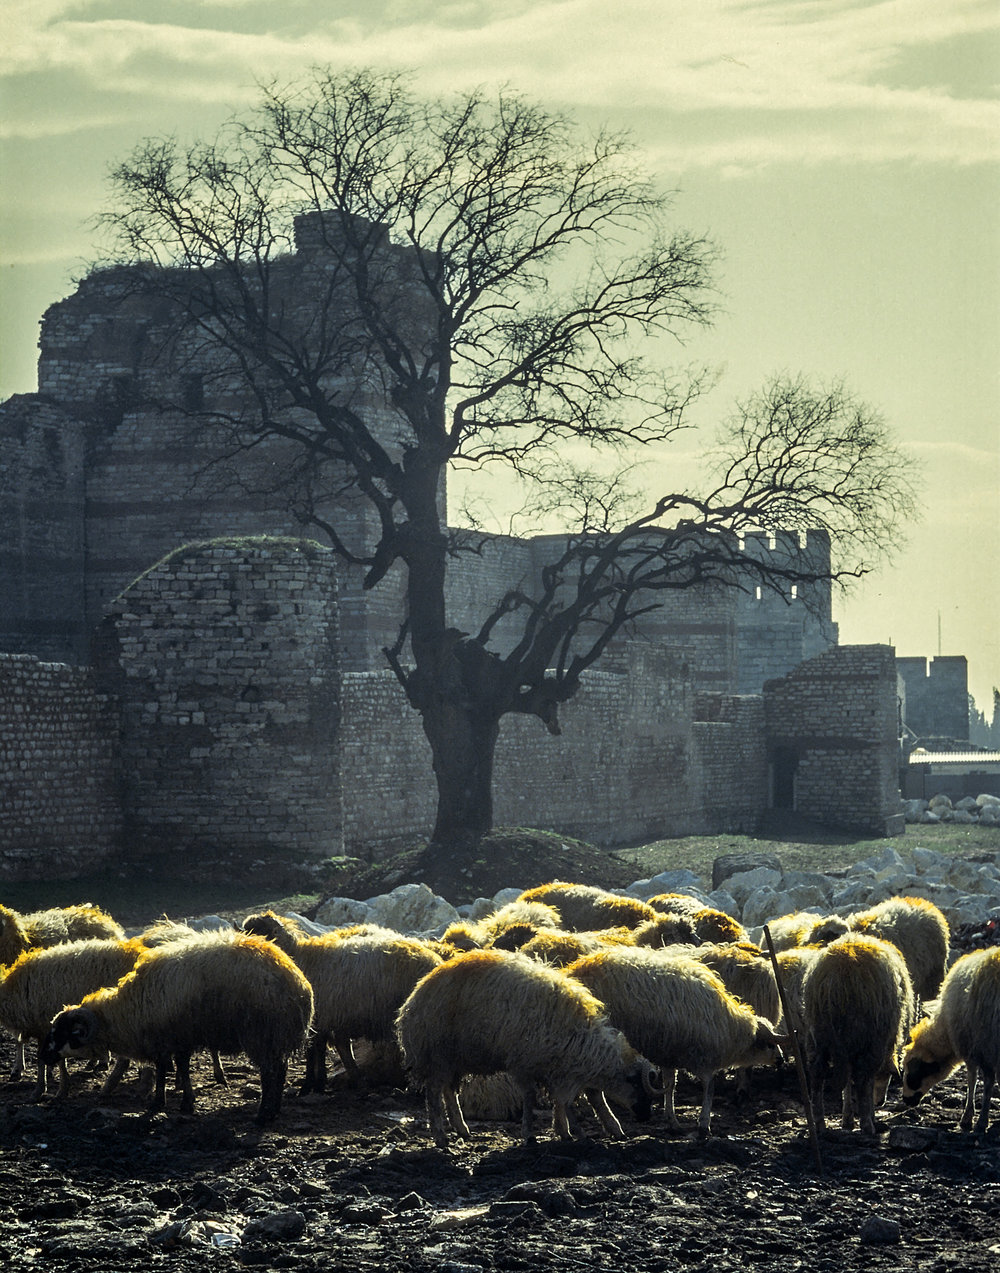 Sheep near the ancient city wall of Istanbul, Turkey